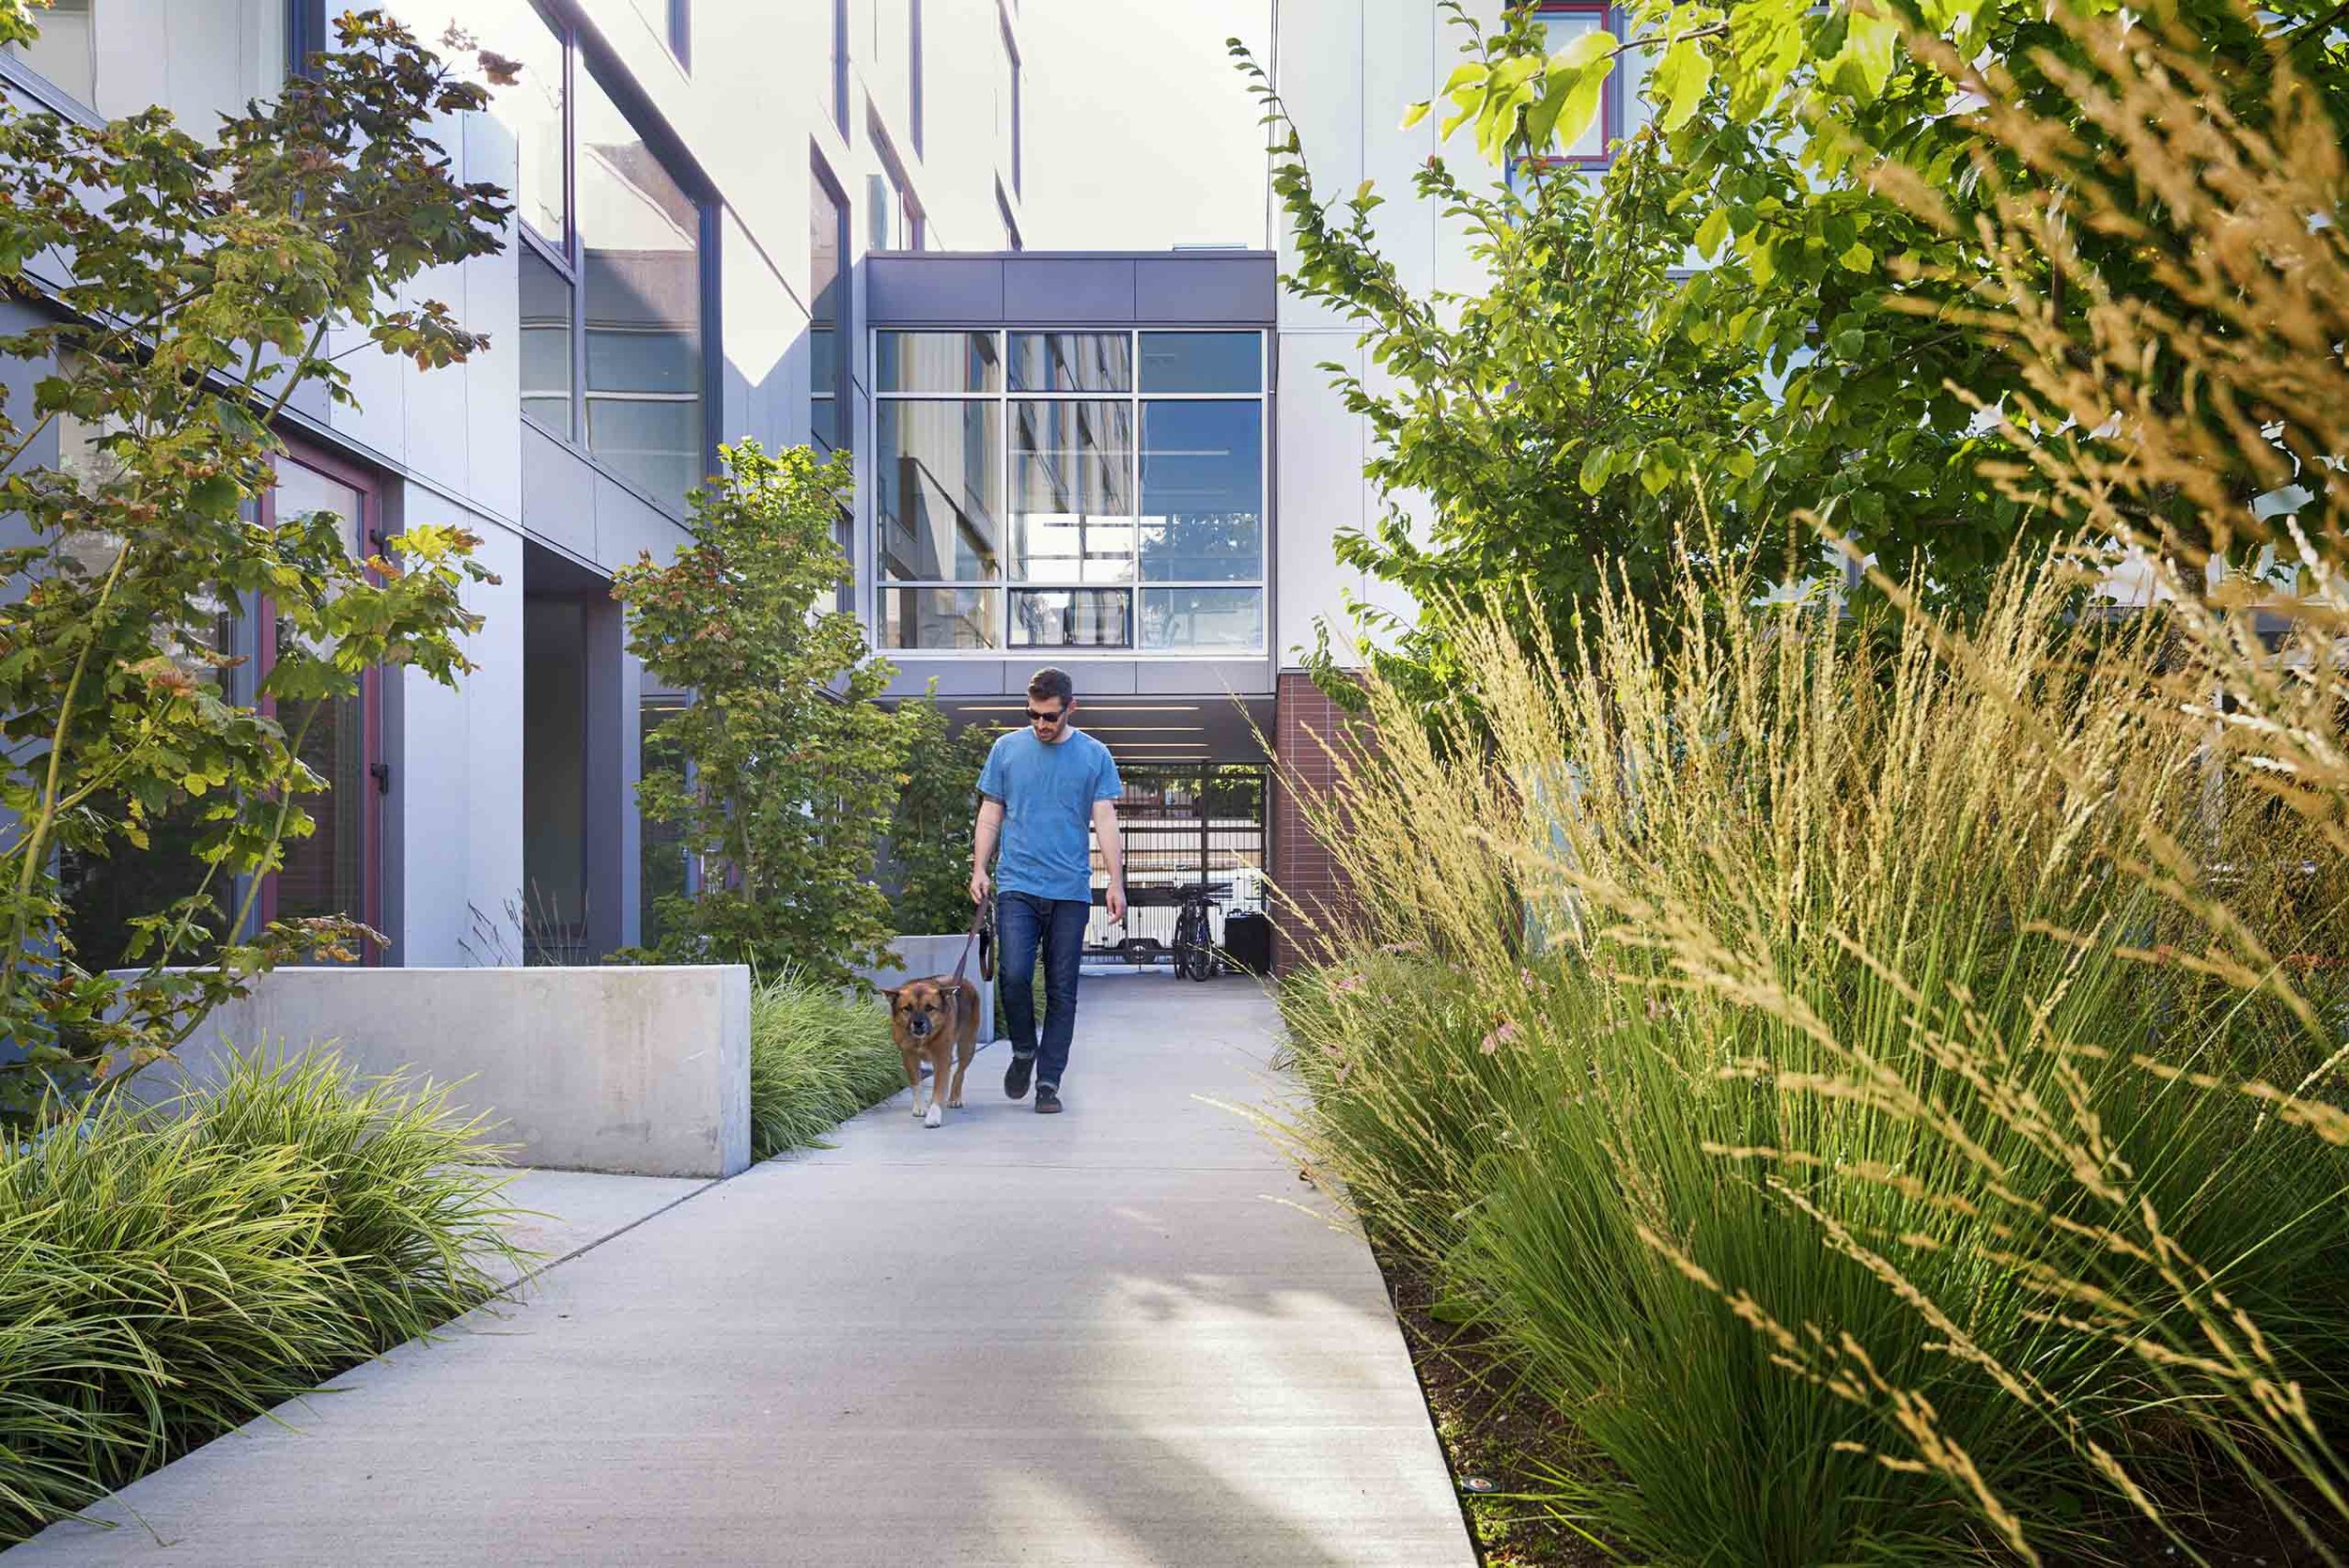 Landscape design for the BelRoy Apartments in Seattle, Washington.